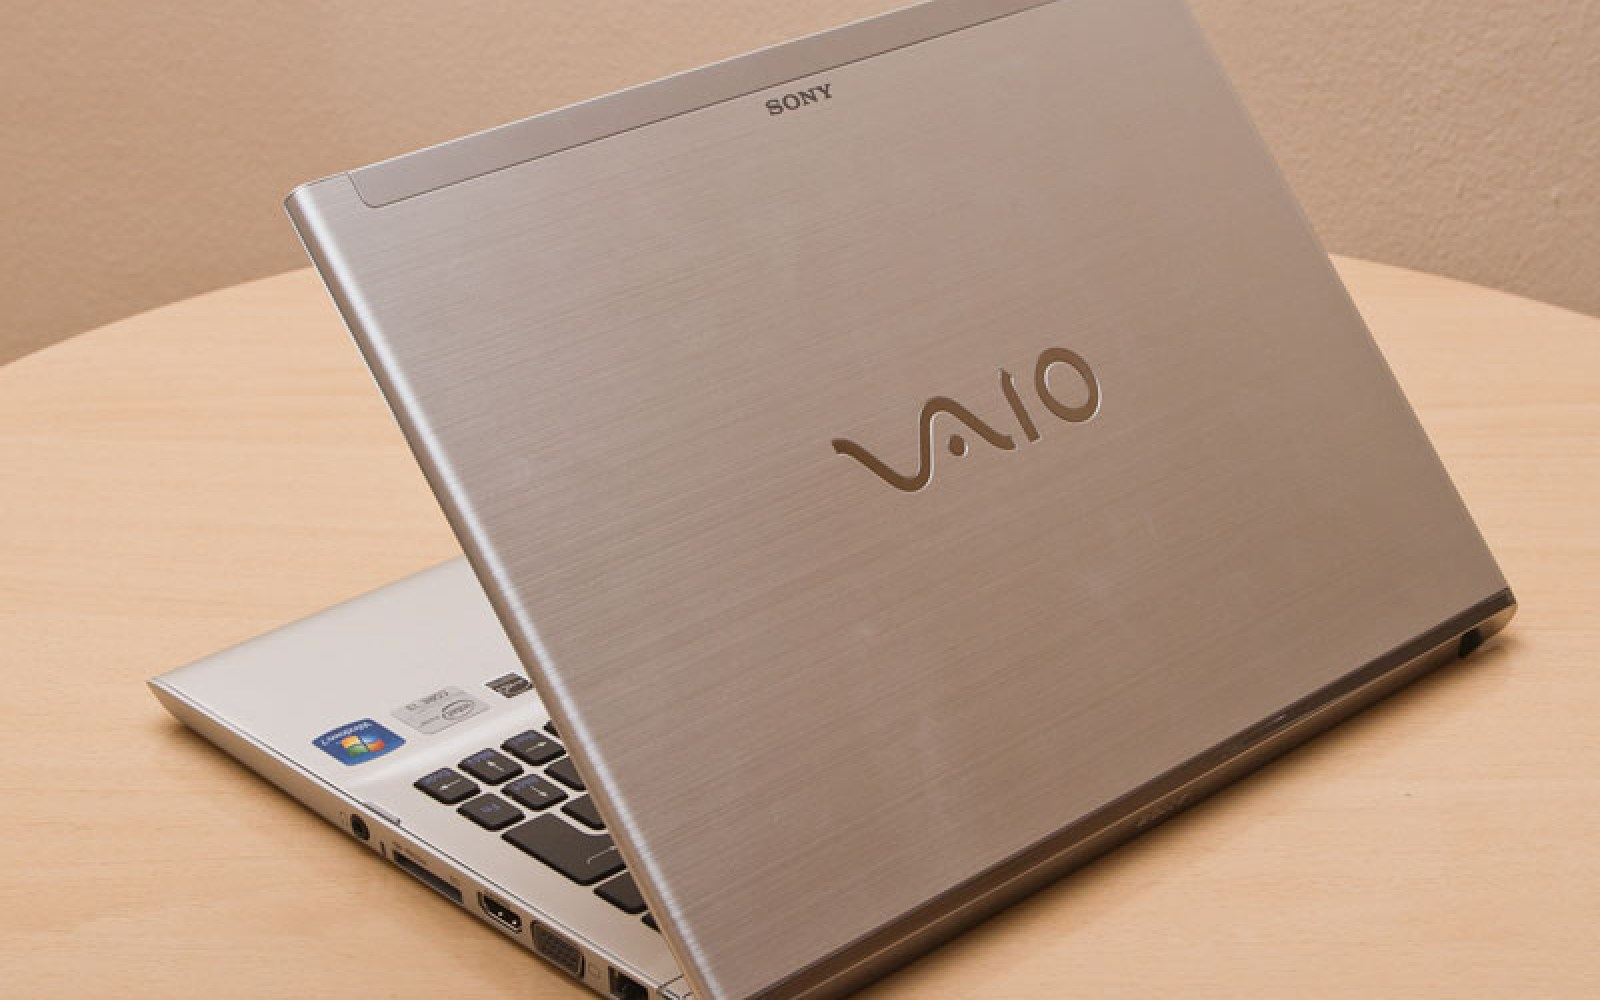 The backstory: Sony's 2001 offer from Steve Jobs to run Mac OS on Vaio laptops [Updated]